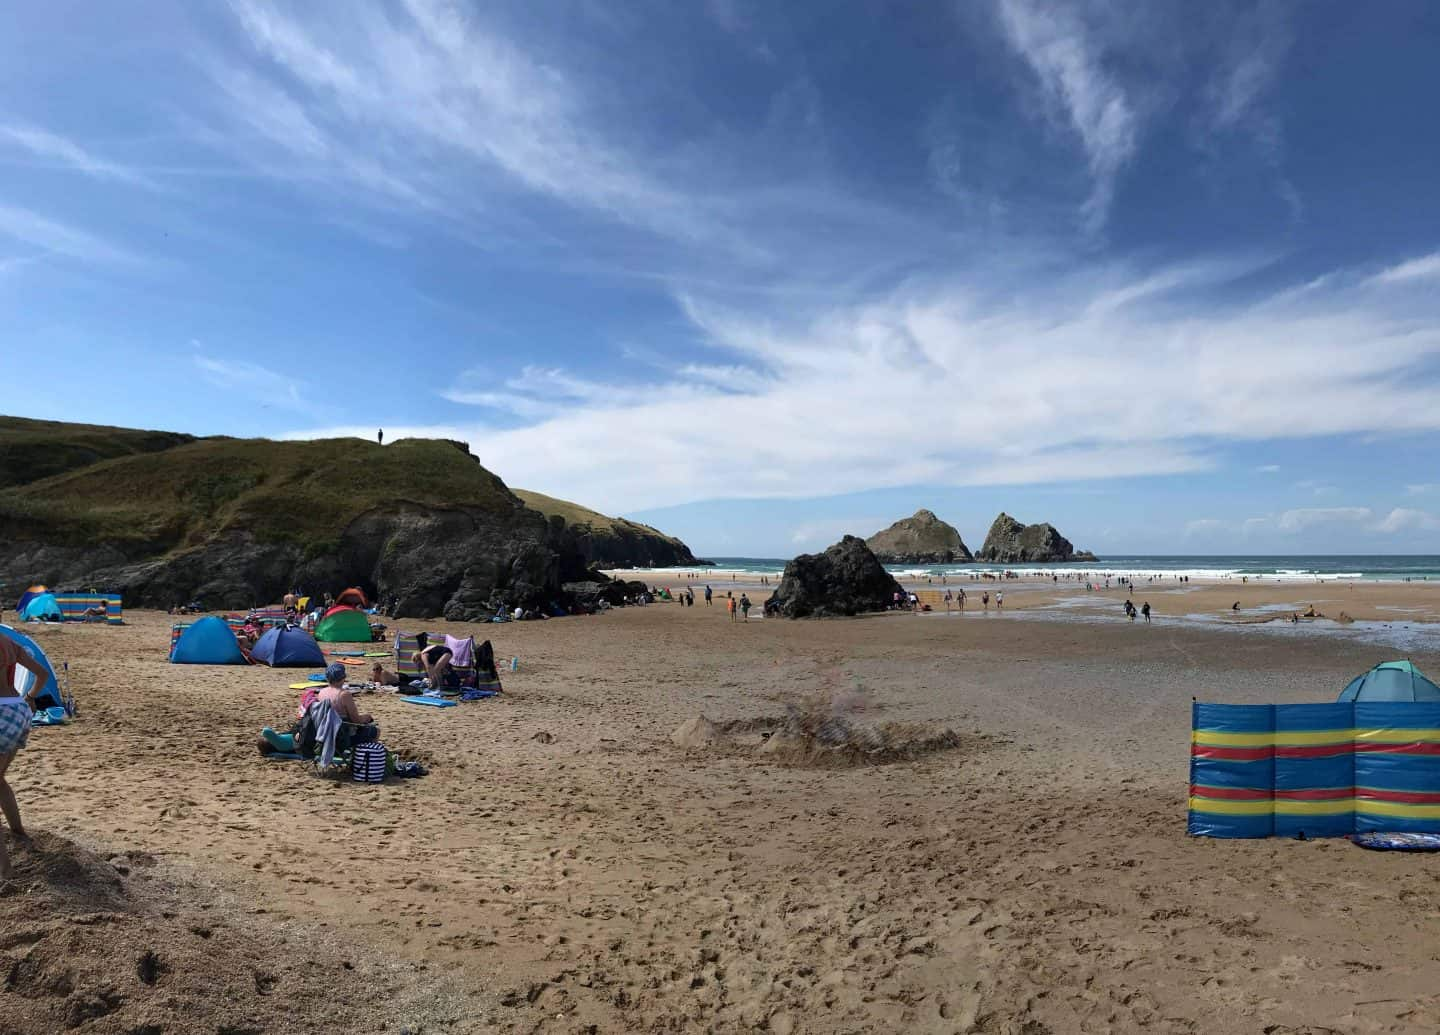 Holywell Bay beach, Newquay